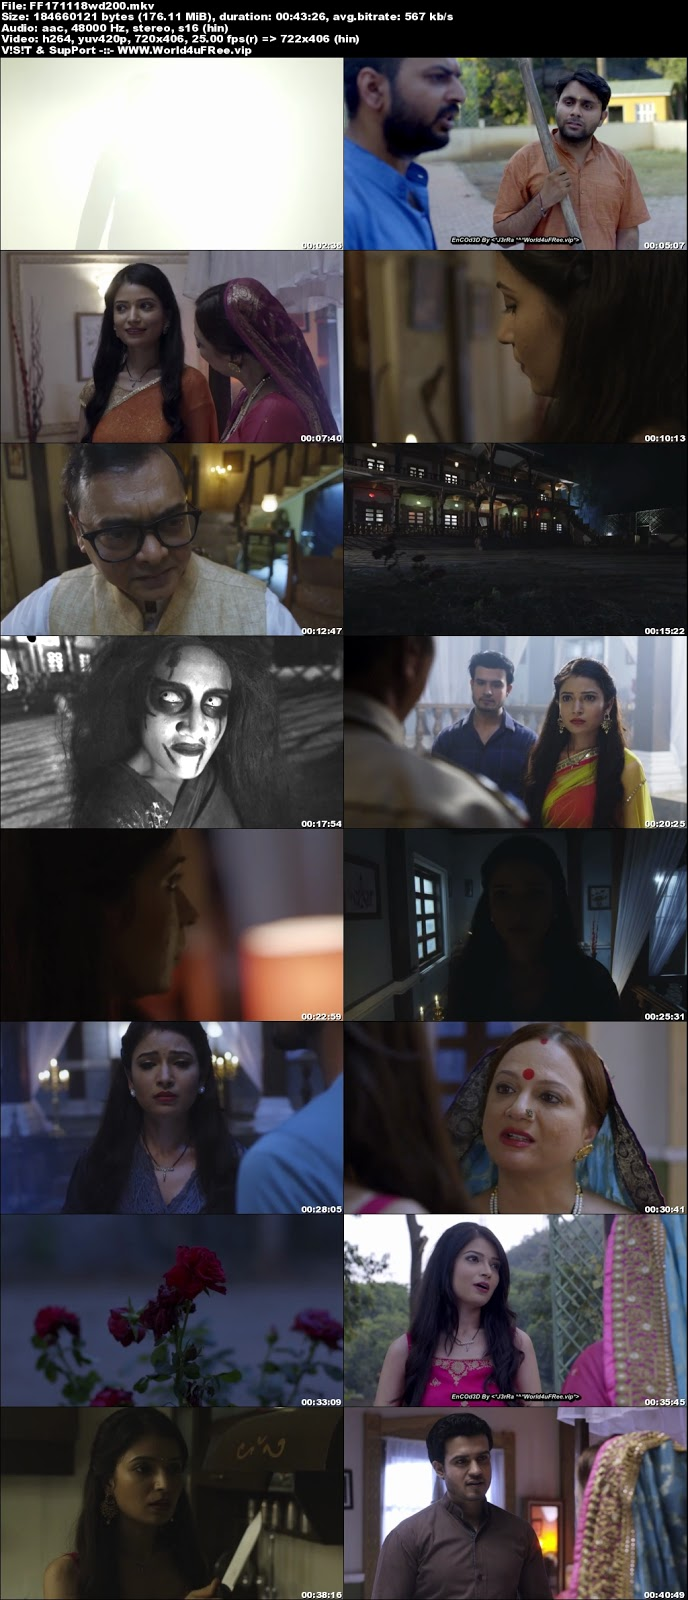 Fear Files 17 November 2018 WEBRip 480p 150Mb x264 world4ufree.fun tv show Fear Files hindi tv showFear Files Season 1 Zee tv show compressed small size free download or watch online at world4ufree.fun